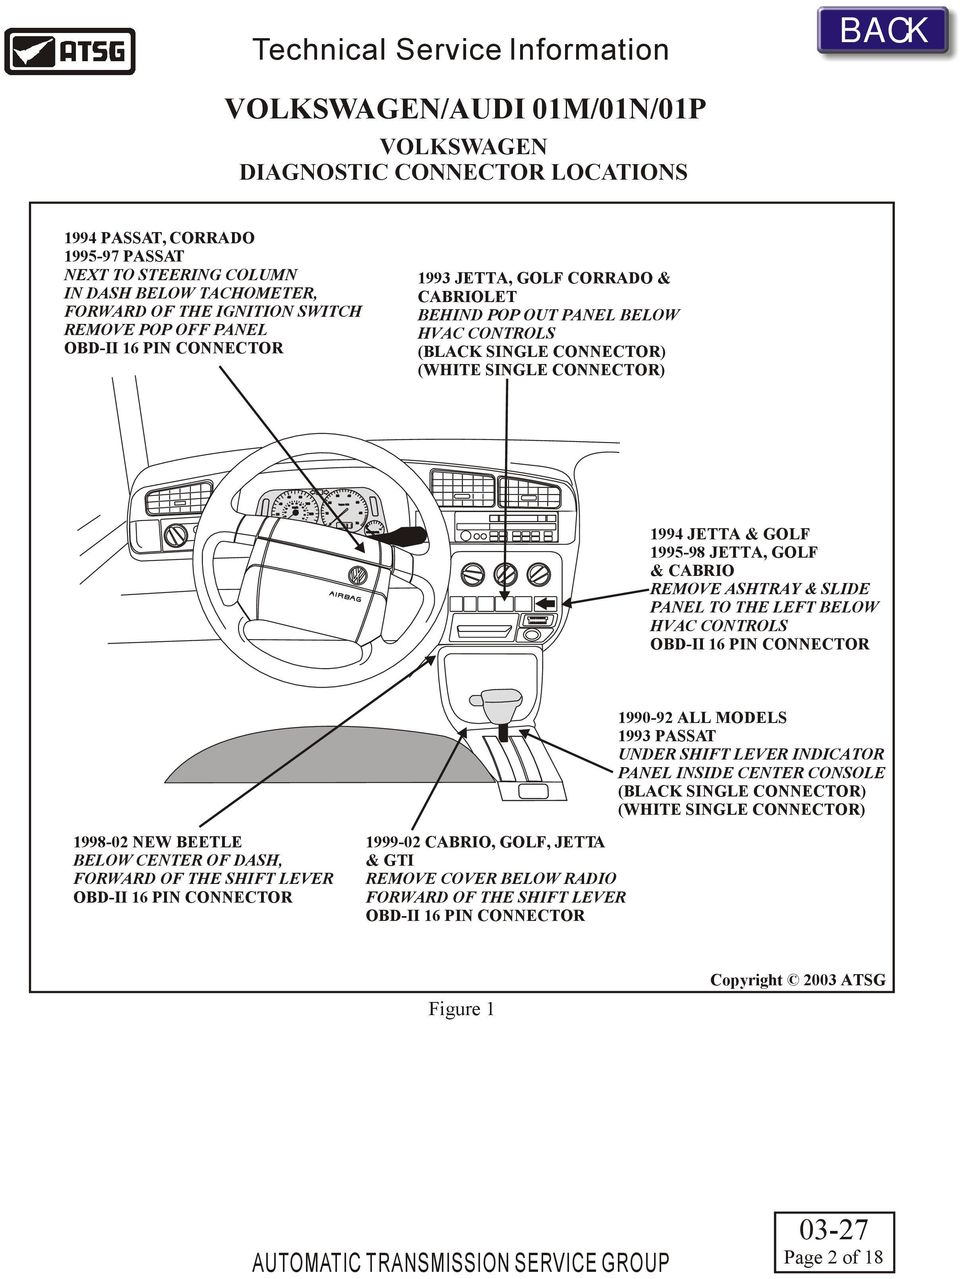 Technical Service Information Pdf Wiring Diagram For 1994 Jetta White Single Connector 0 70 Golf 1995 98